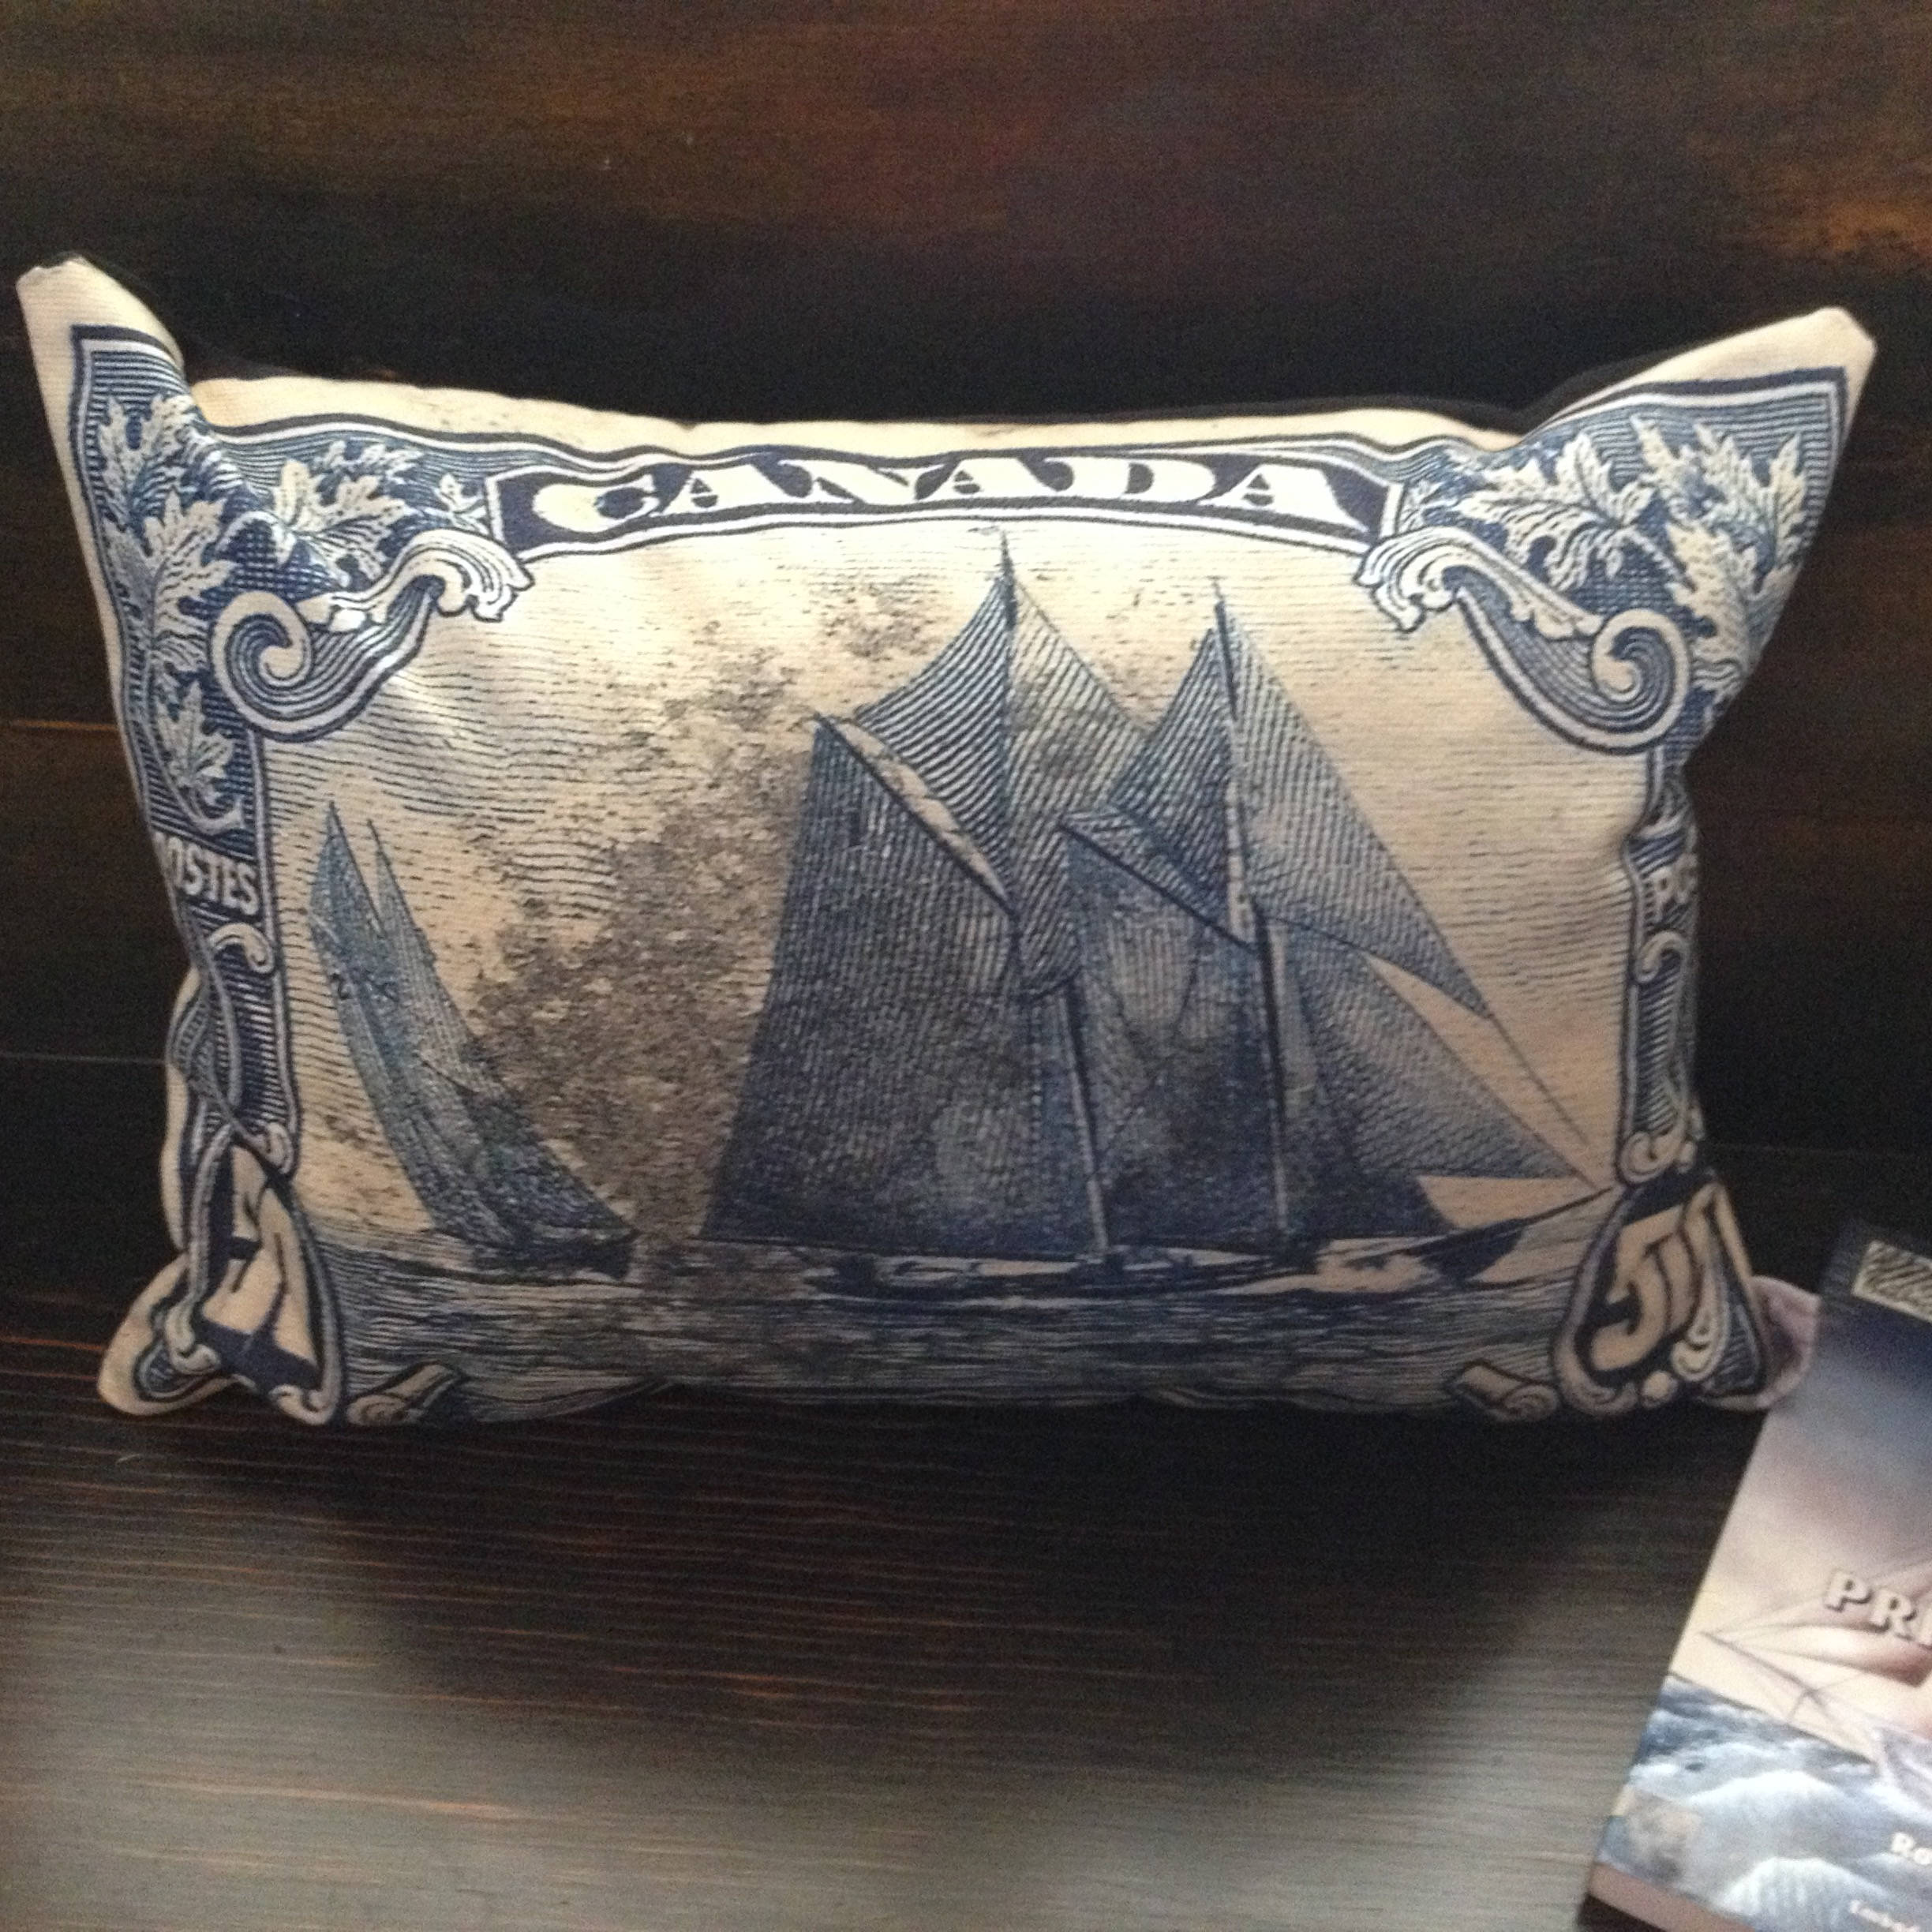 Canadian Inspired Home Decor Canada Pillow Via Etsy: Bluenose Iconic Canadian Sailing Ship 20x14 Canvas Lumbar